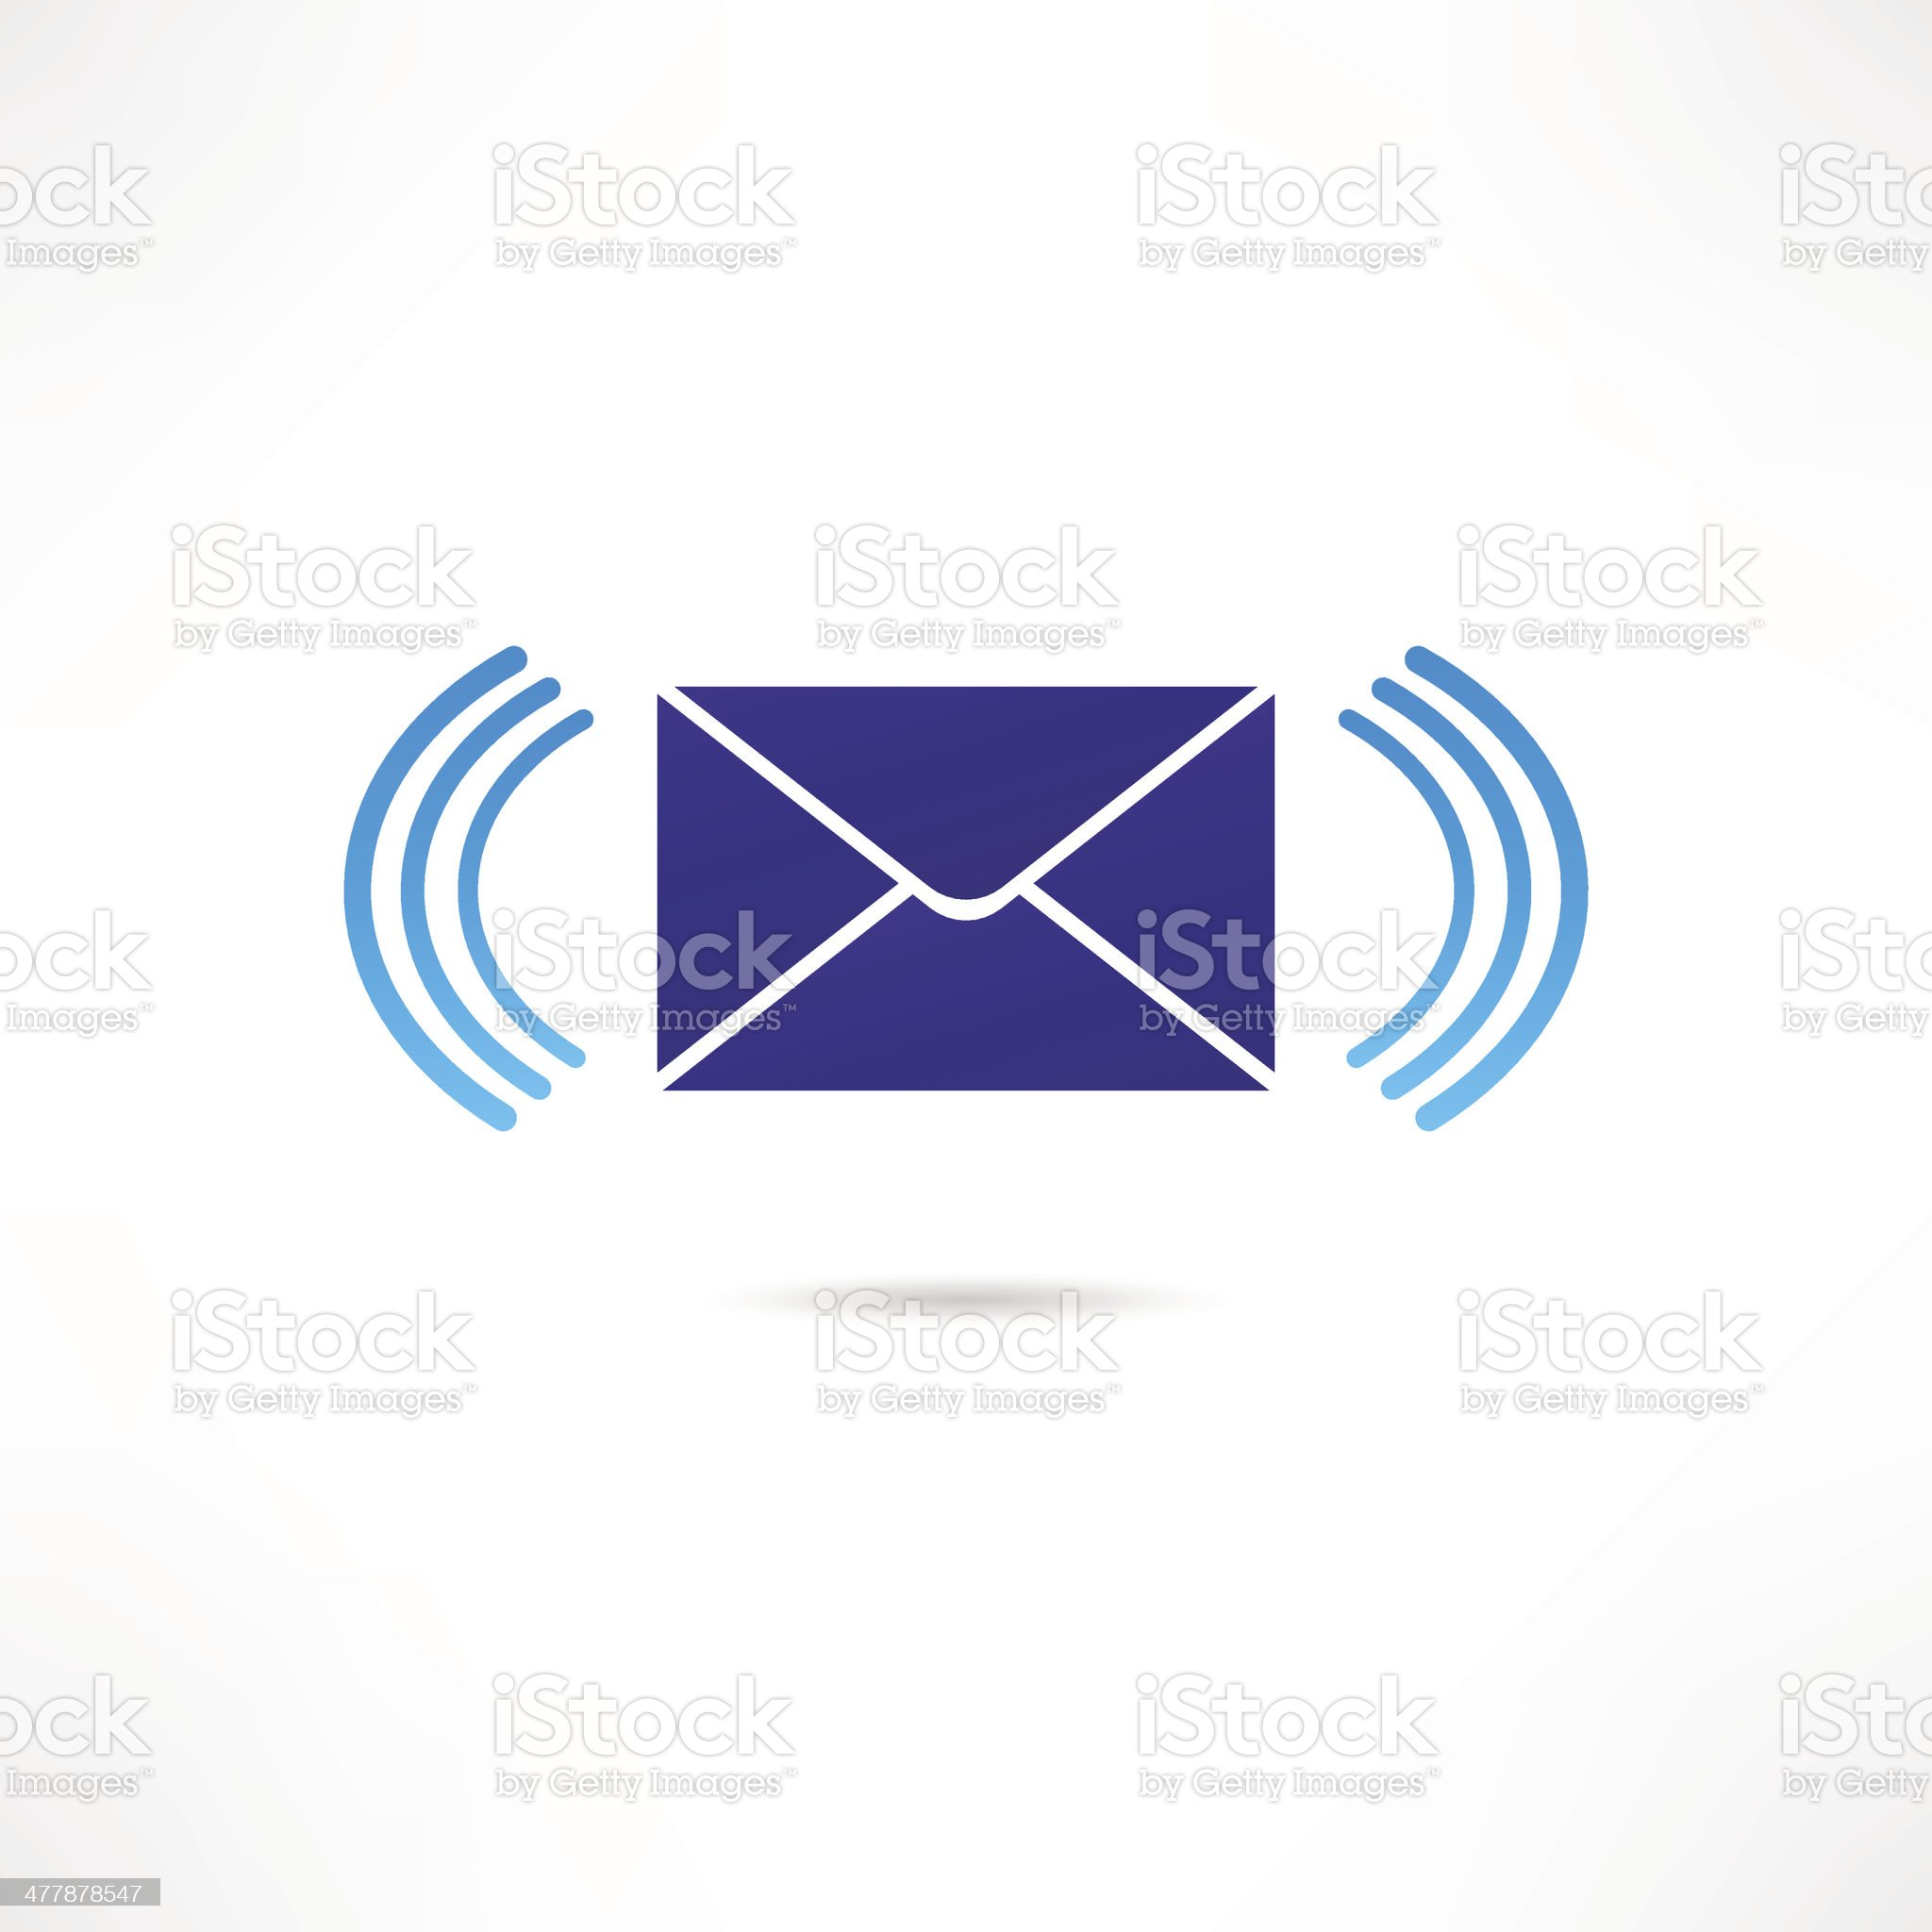 Email correspondence icon royalty-free stock vector art